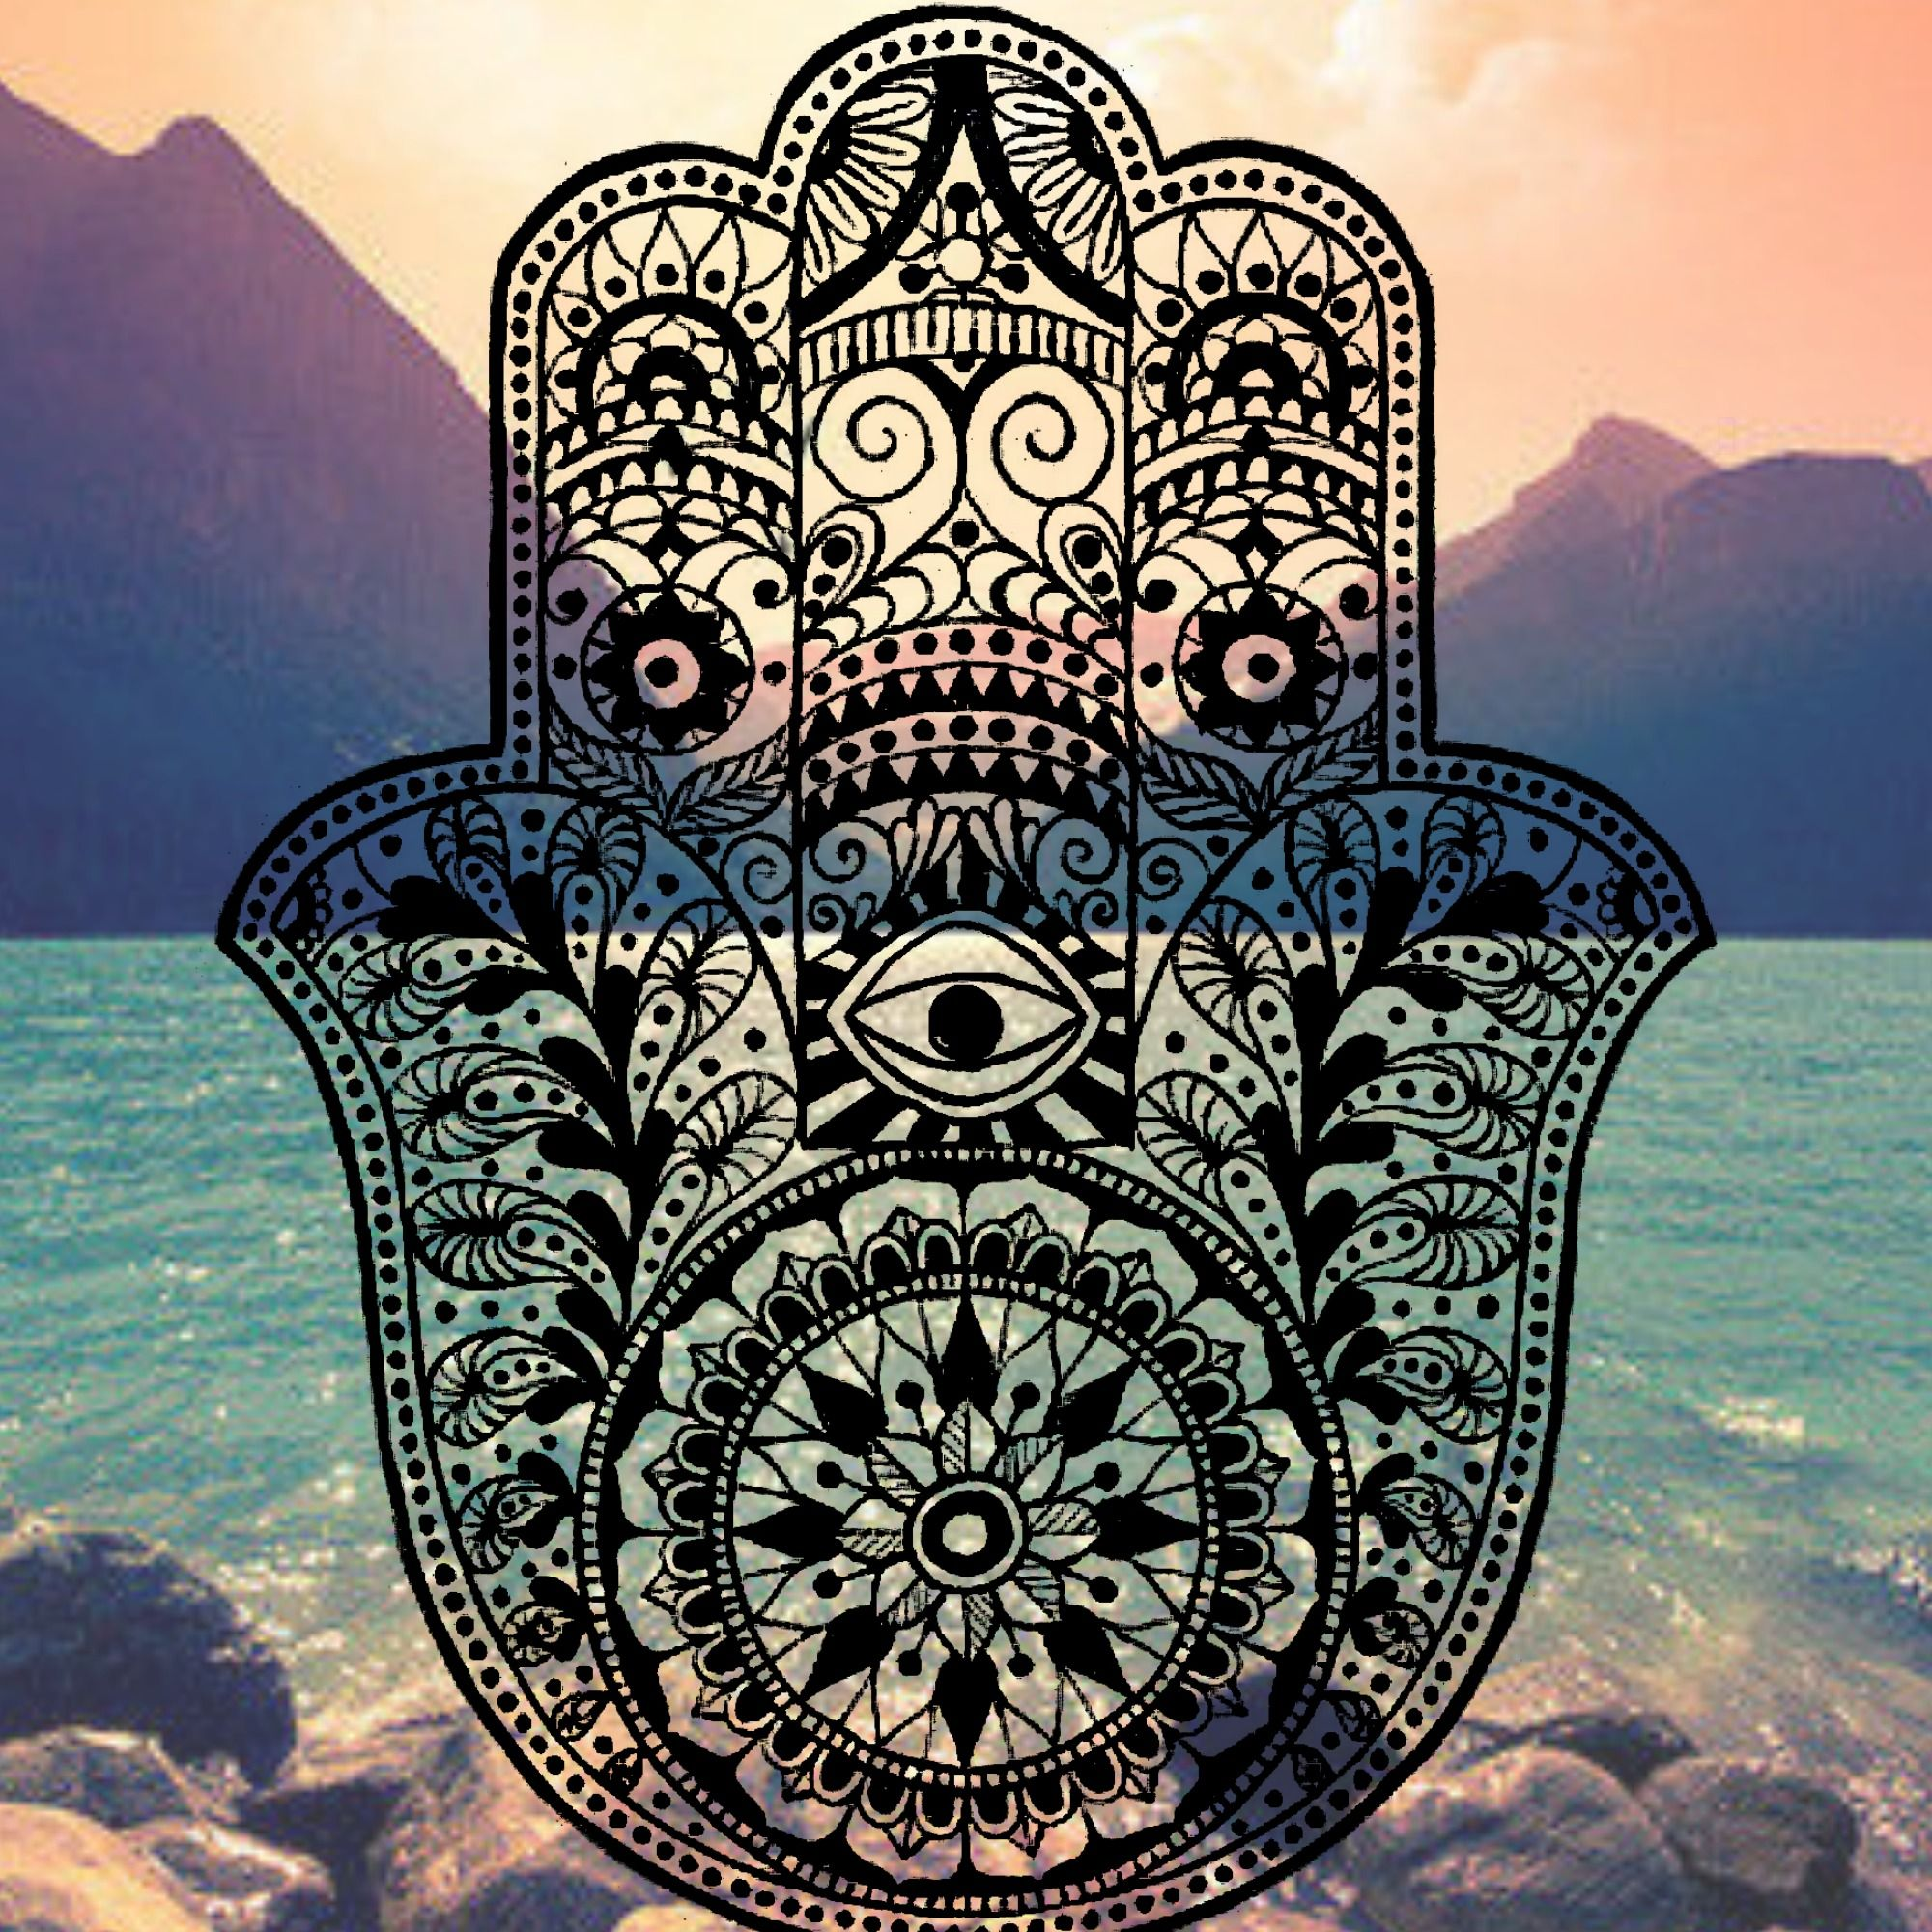 Wallpaper iphone mandala - Hamsa Iphone Background Mountain Ocean Tumblr Evil Eye Hams Hand Henna